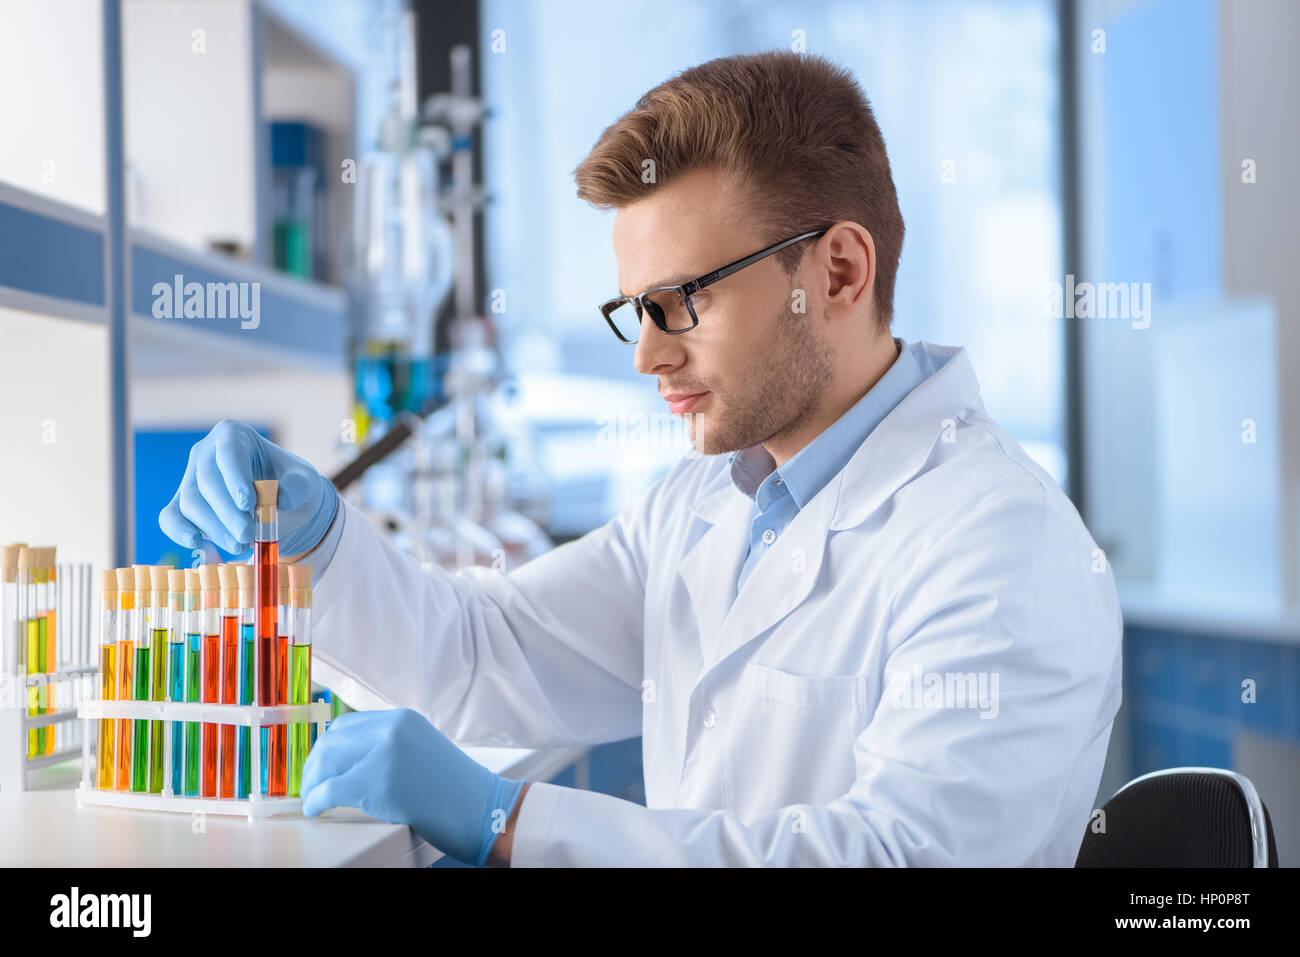 scientist in eyeglasses working with test tubes in lab - Stock Image